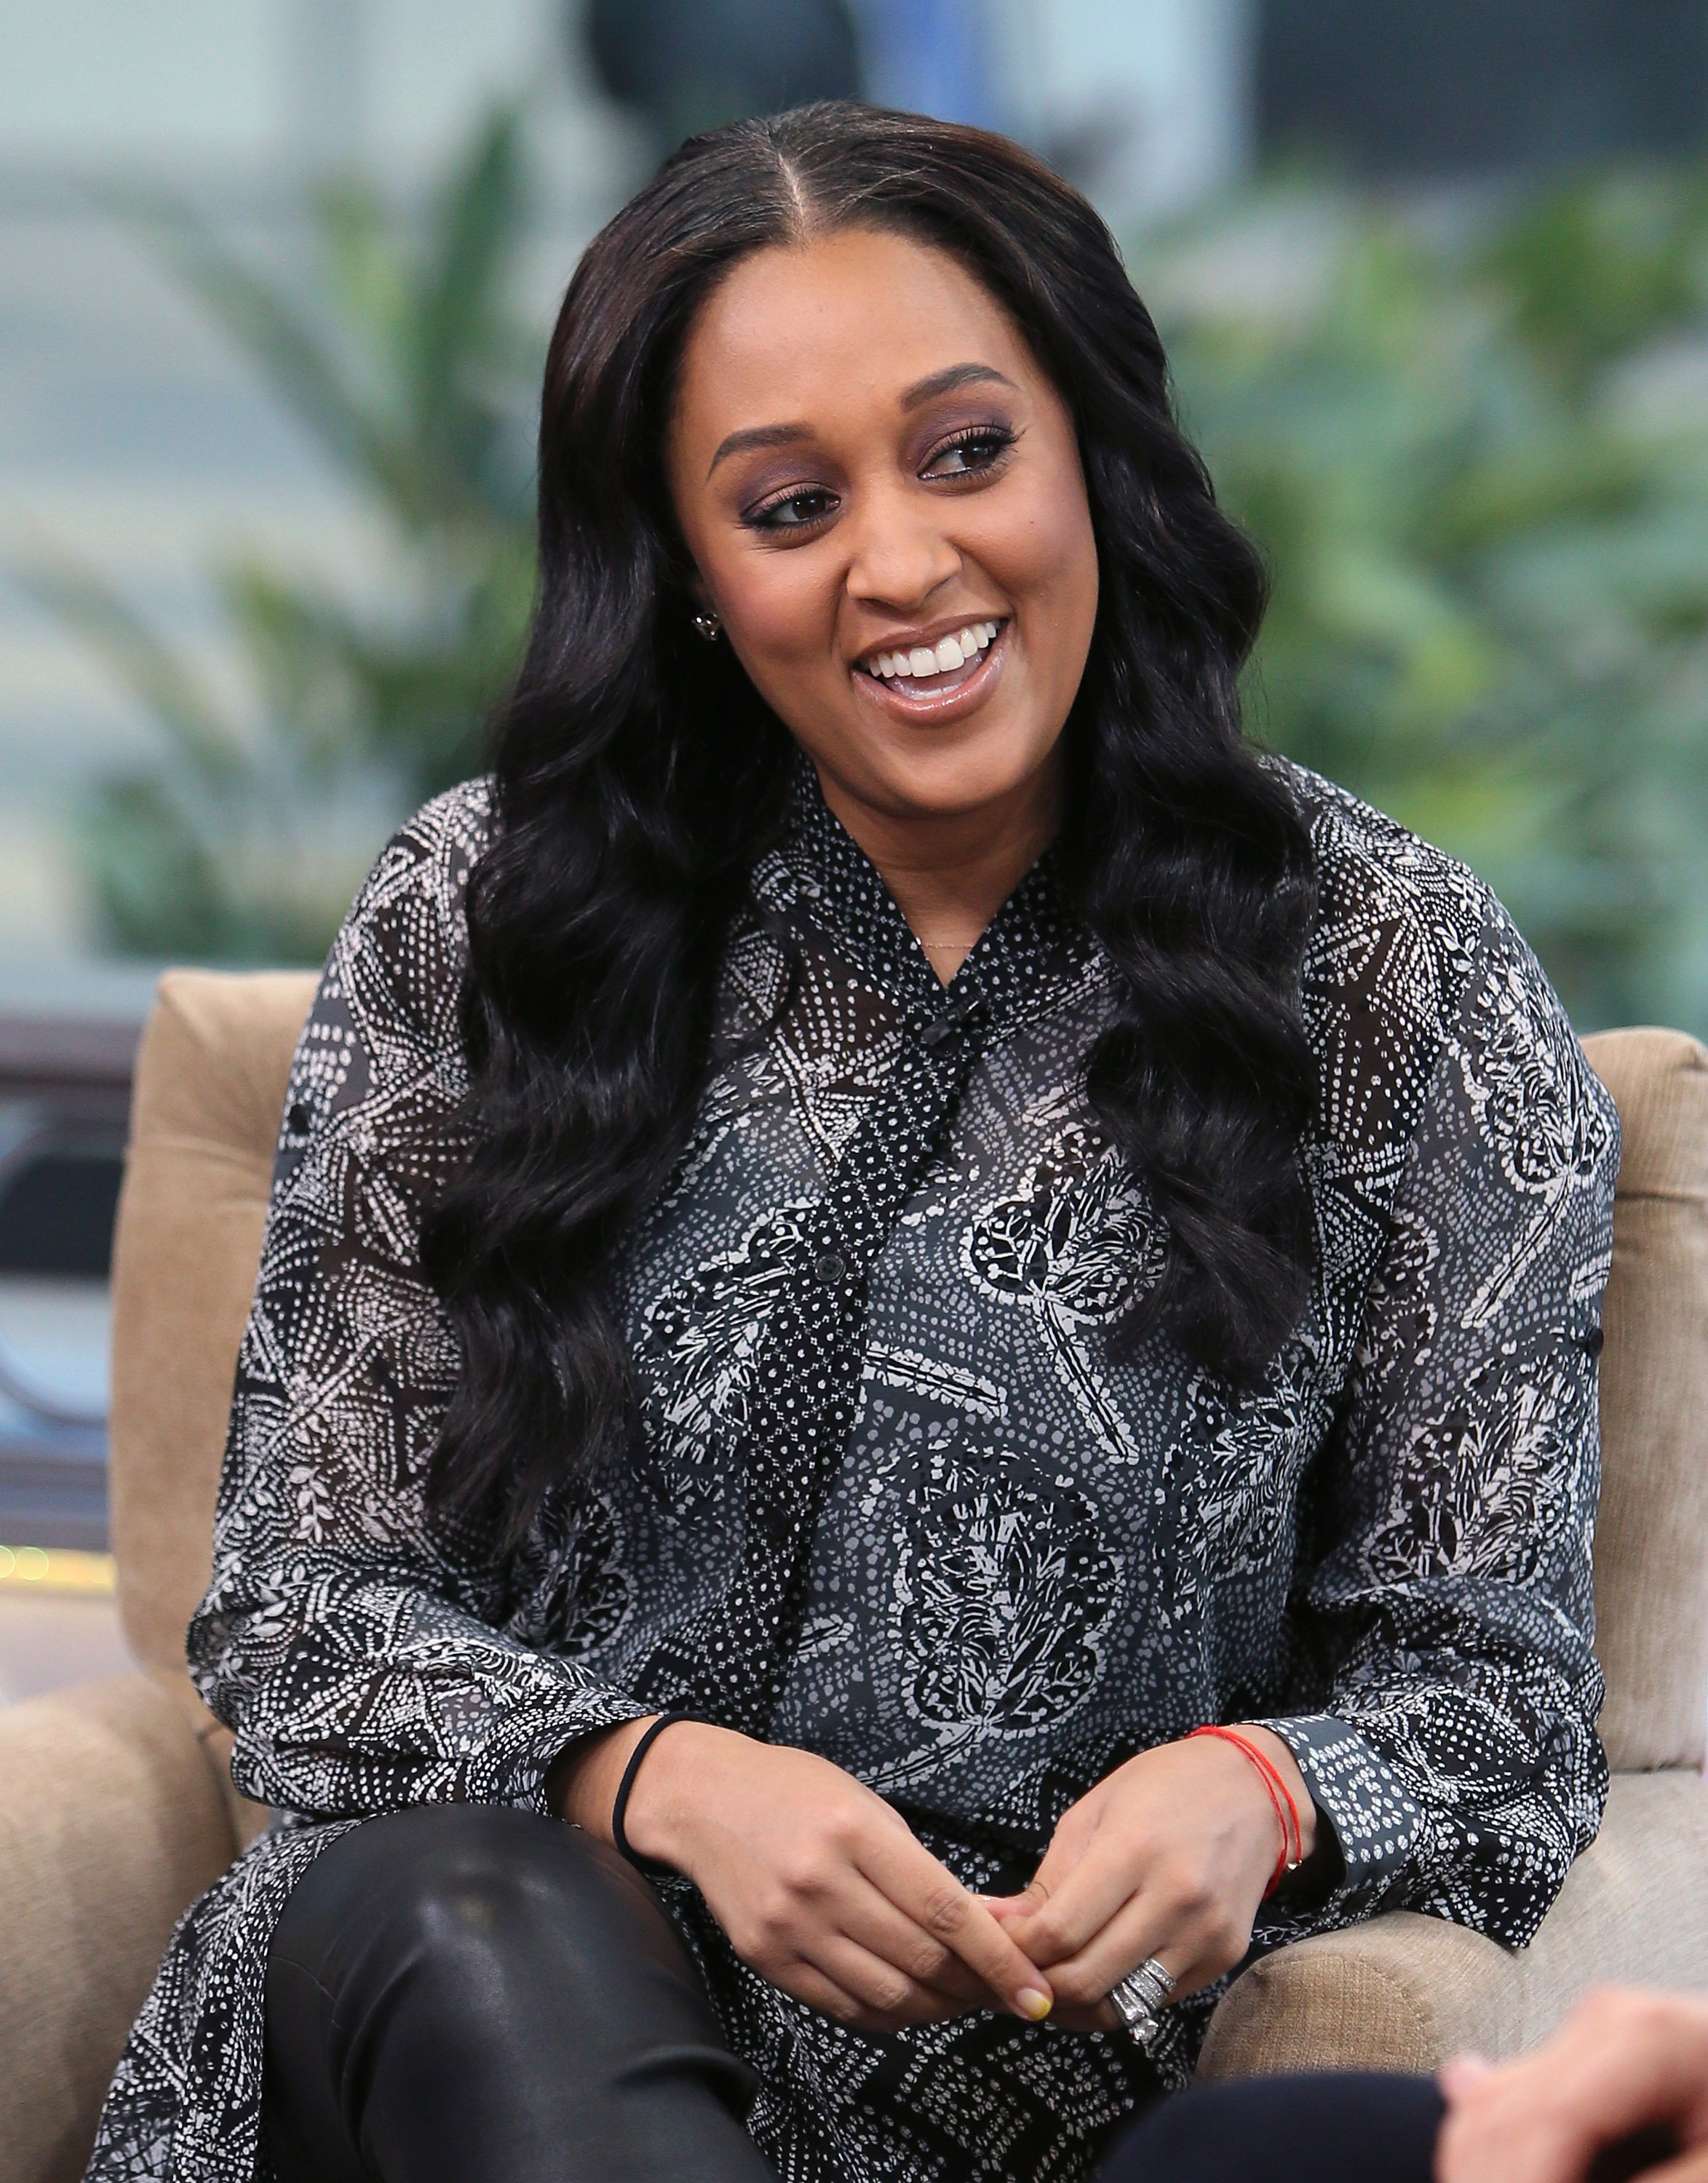 """Tia Mowry at """"Hollywood Today Live"""" at W Hollywood in California, 2017 